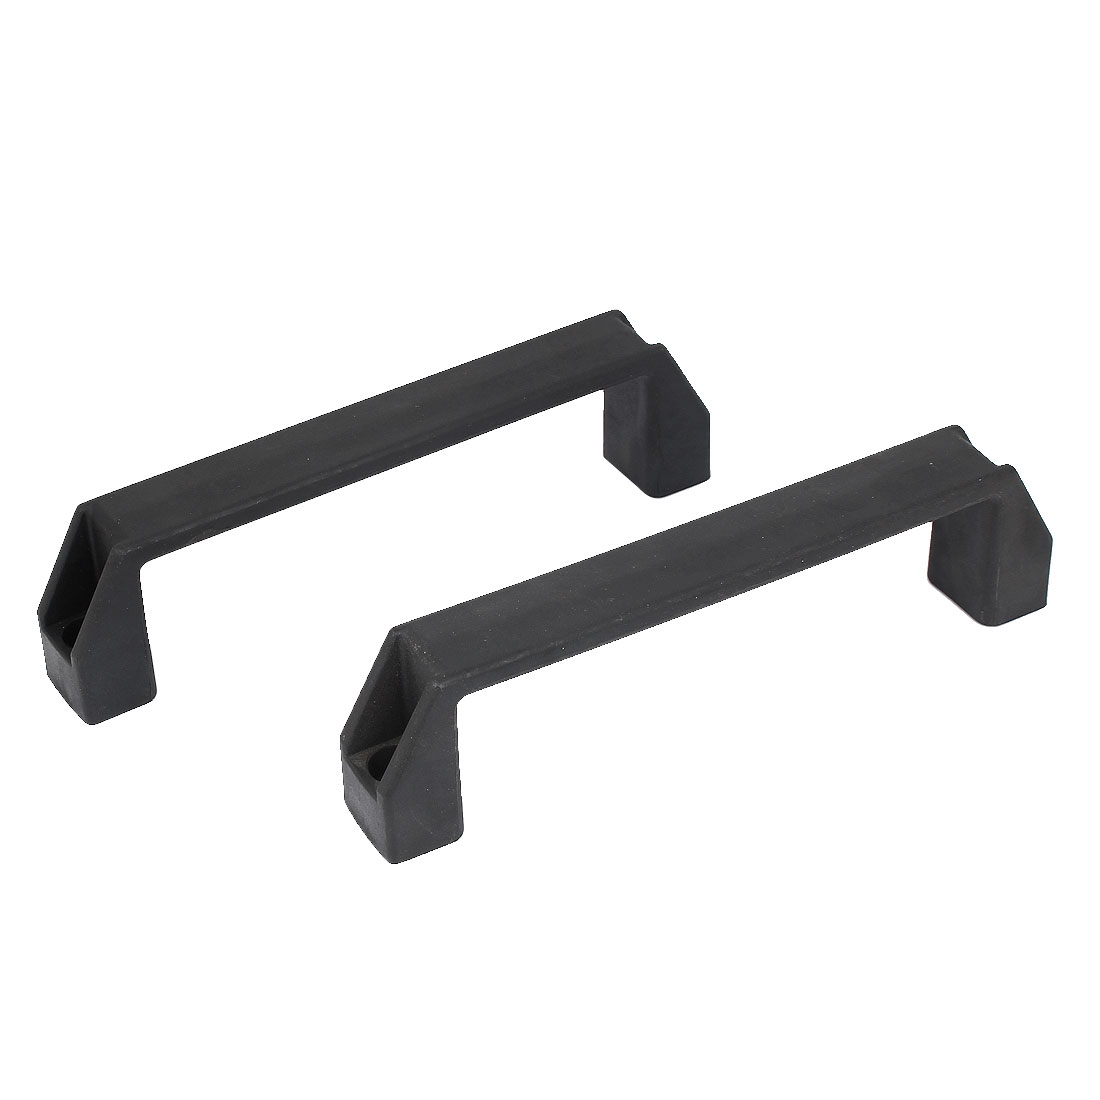 2pcs 200mm Long Rectangle Plastic Pull Handle Knob Black for Cabinet Cupboard Door